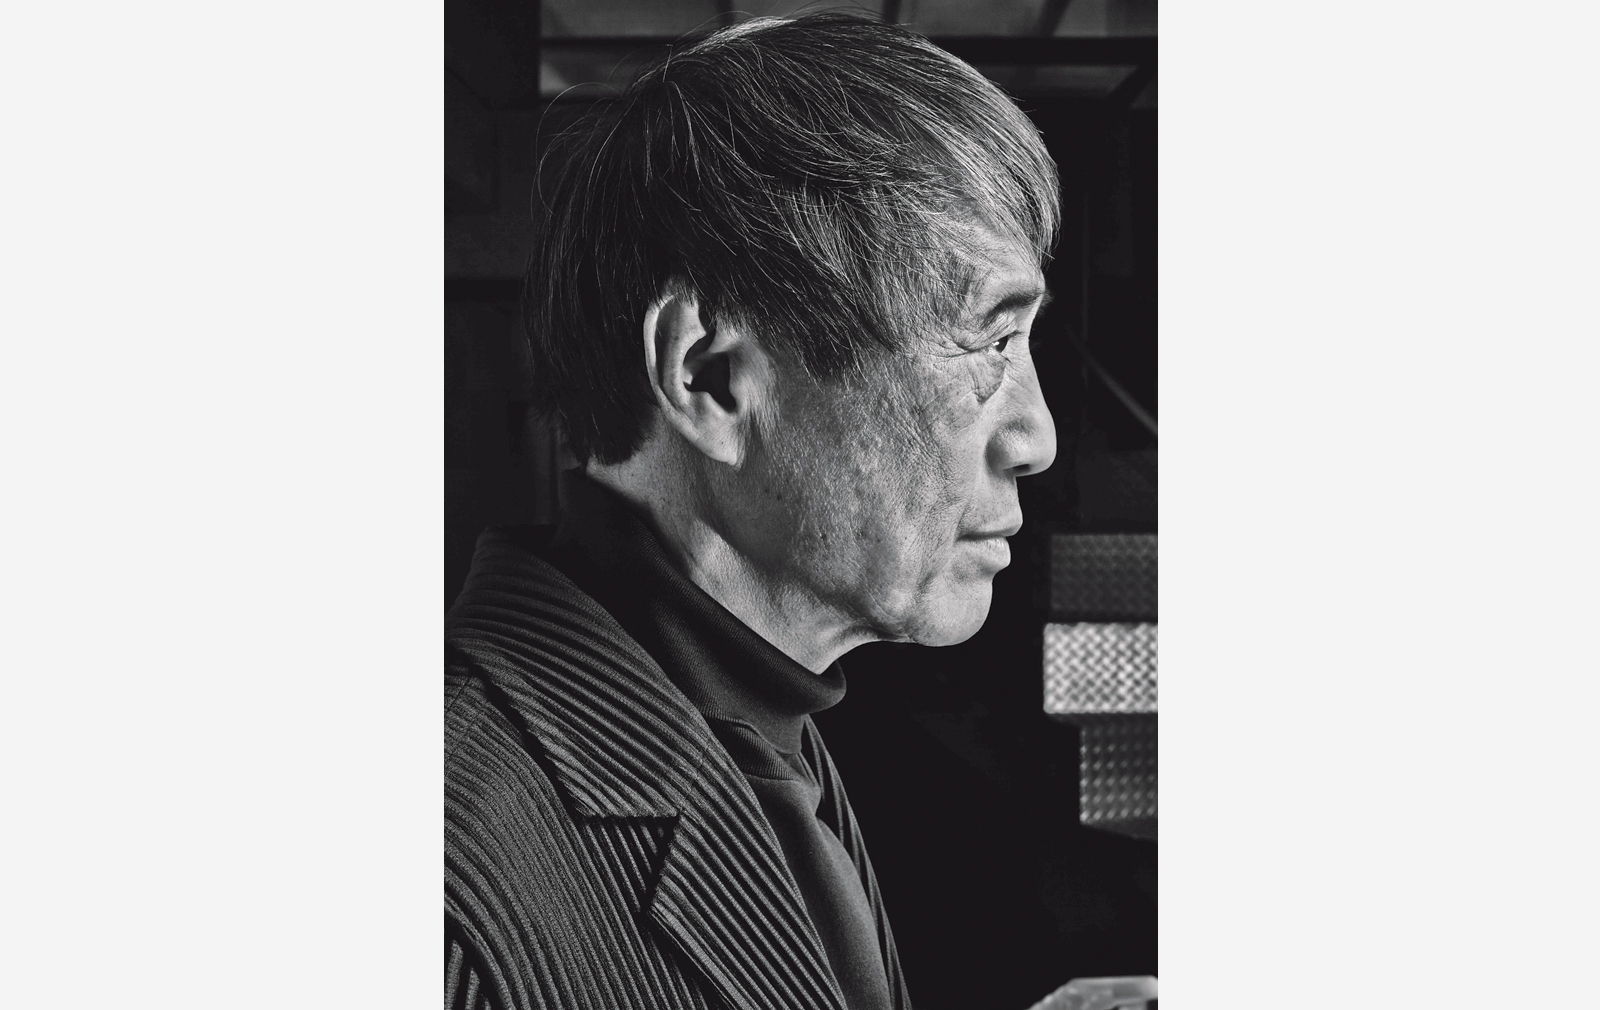 Tadao-interview-pportrait